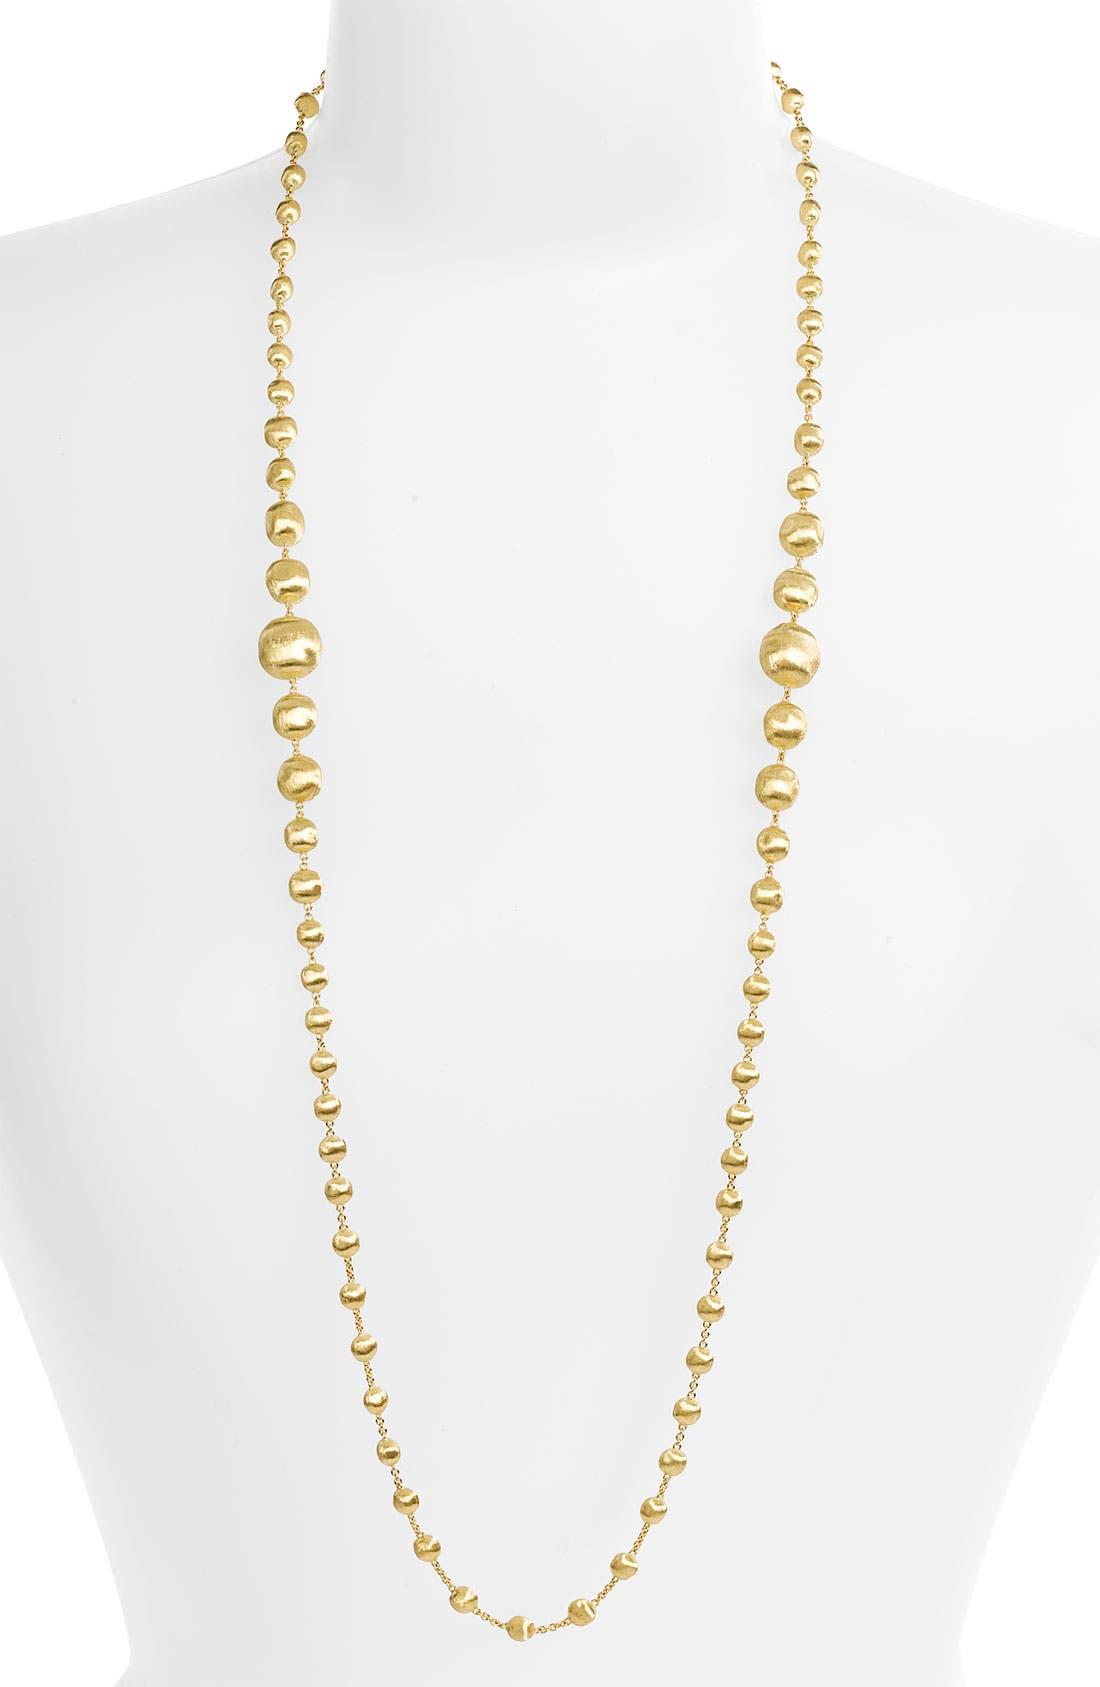 Main Image - Marco Bicego 'Africa Gold' Graduated Long Strand Necklace